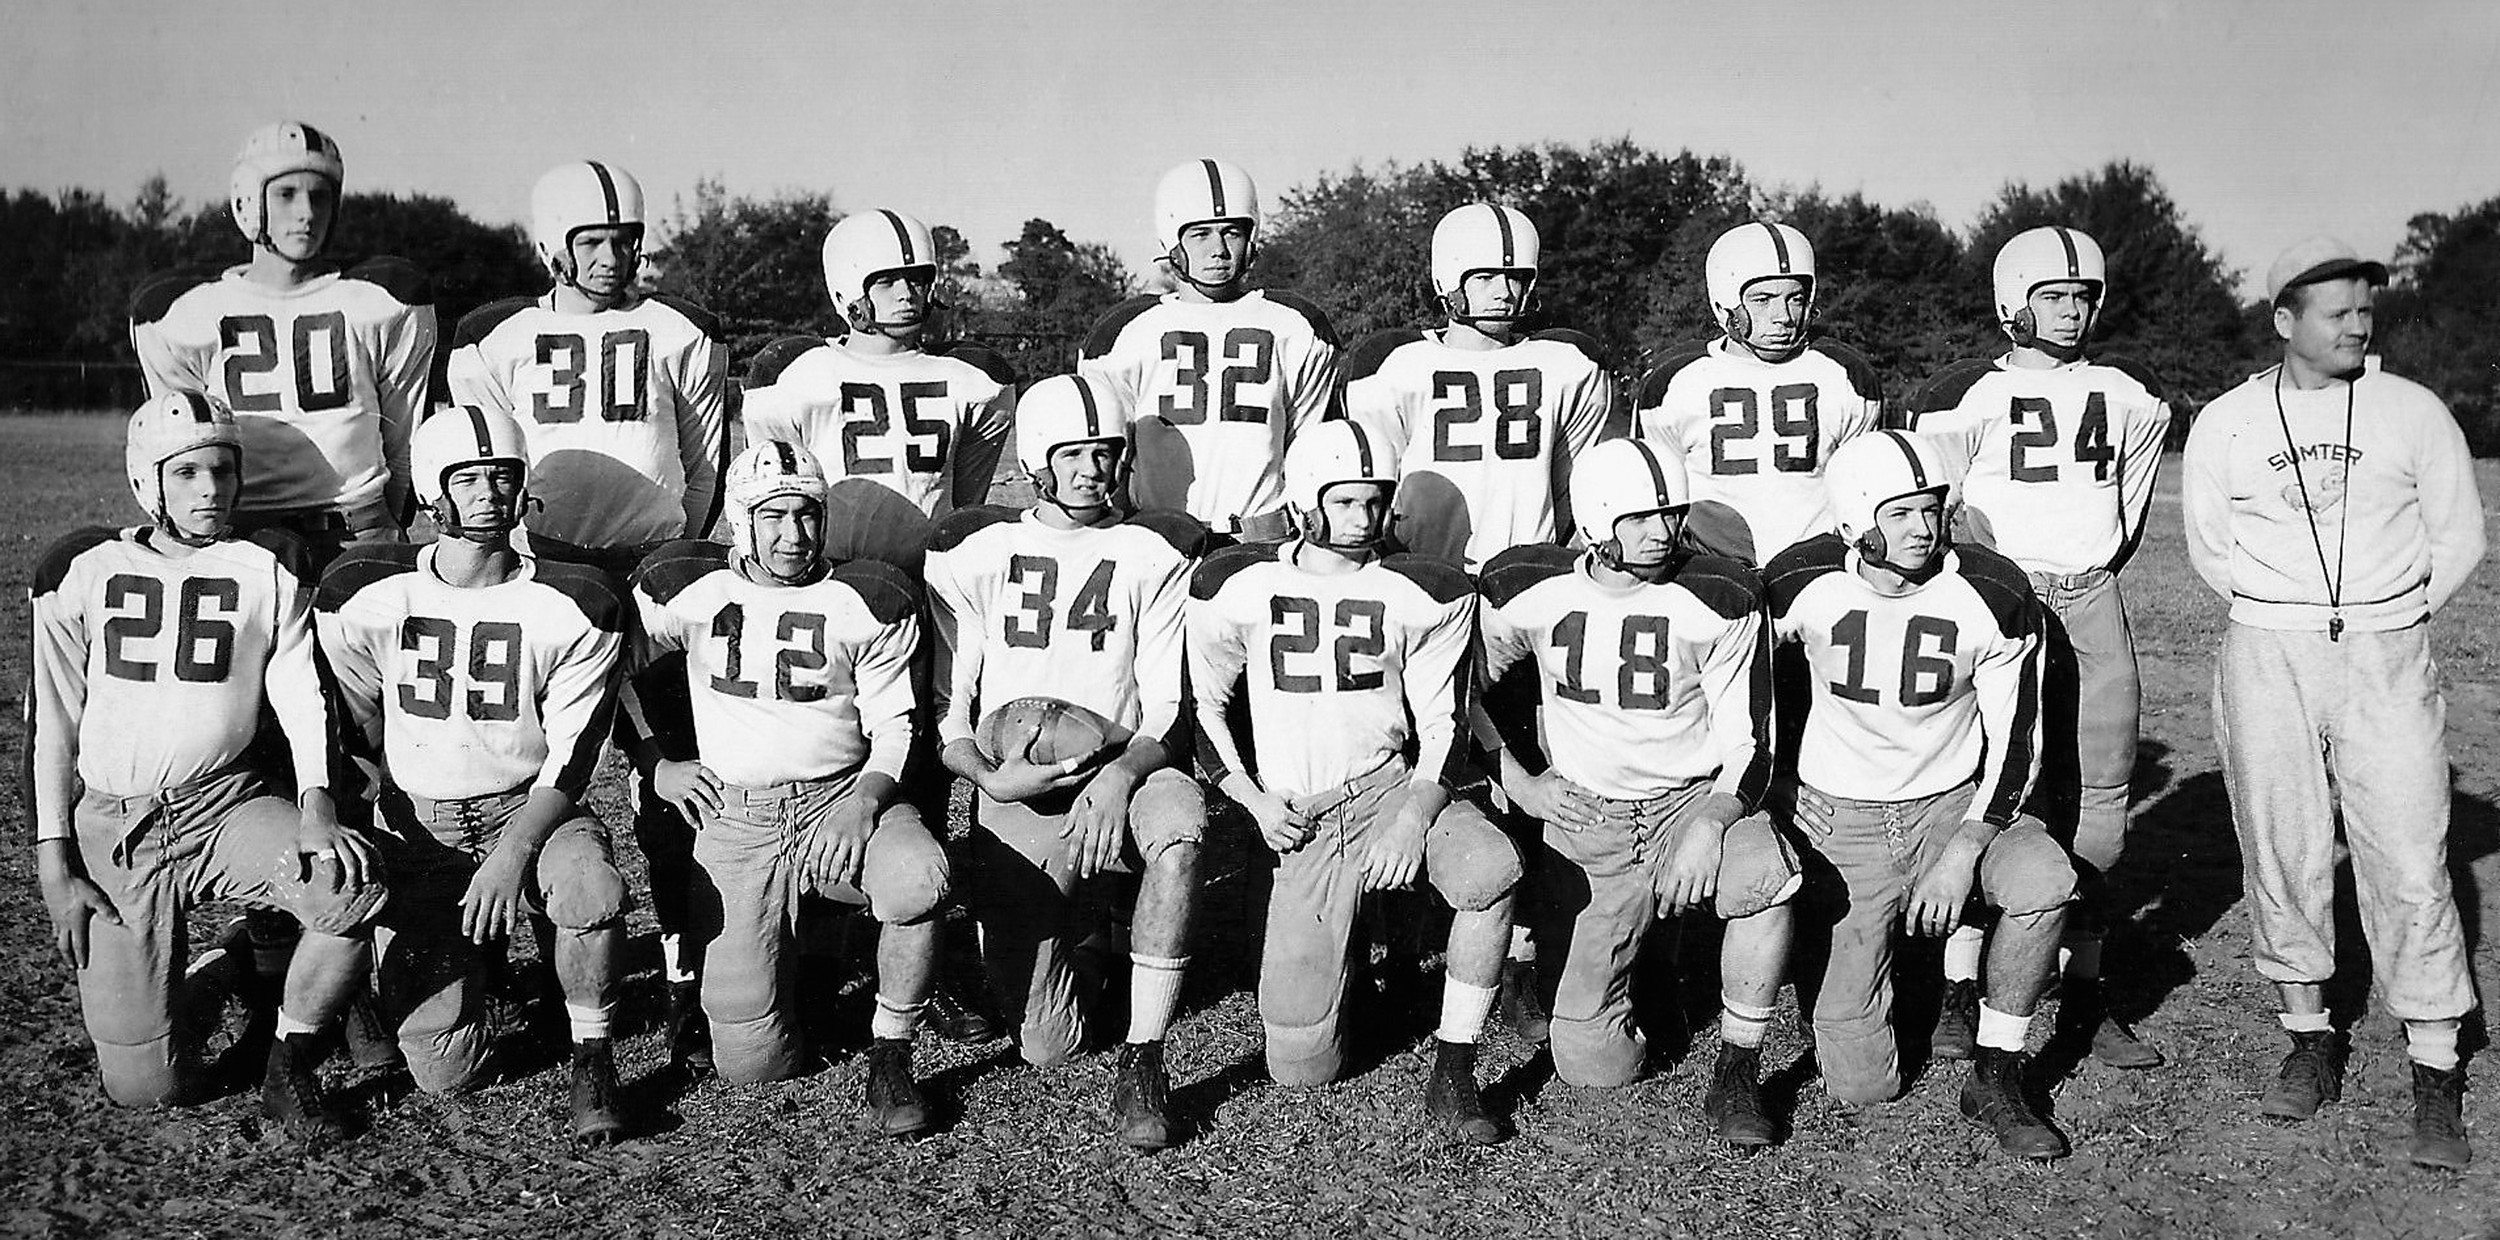 The senior players of the 1949-50 Sumter High School football team are seen in this group photo. Top row, from left are: Hugh Humphries, Marion Cain, Laverne Hill, Mac Dabbs, Welly Bradham, Russell Sutton, Dale Garrison and Coach Hutch Hutchinson. Bottom row, from left are: Wilson Parham, Frank Moses, Billy Timmons, Robert Brunson, Joe Parish, Homer Morris and Perry Biddle.